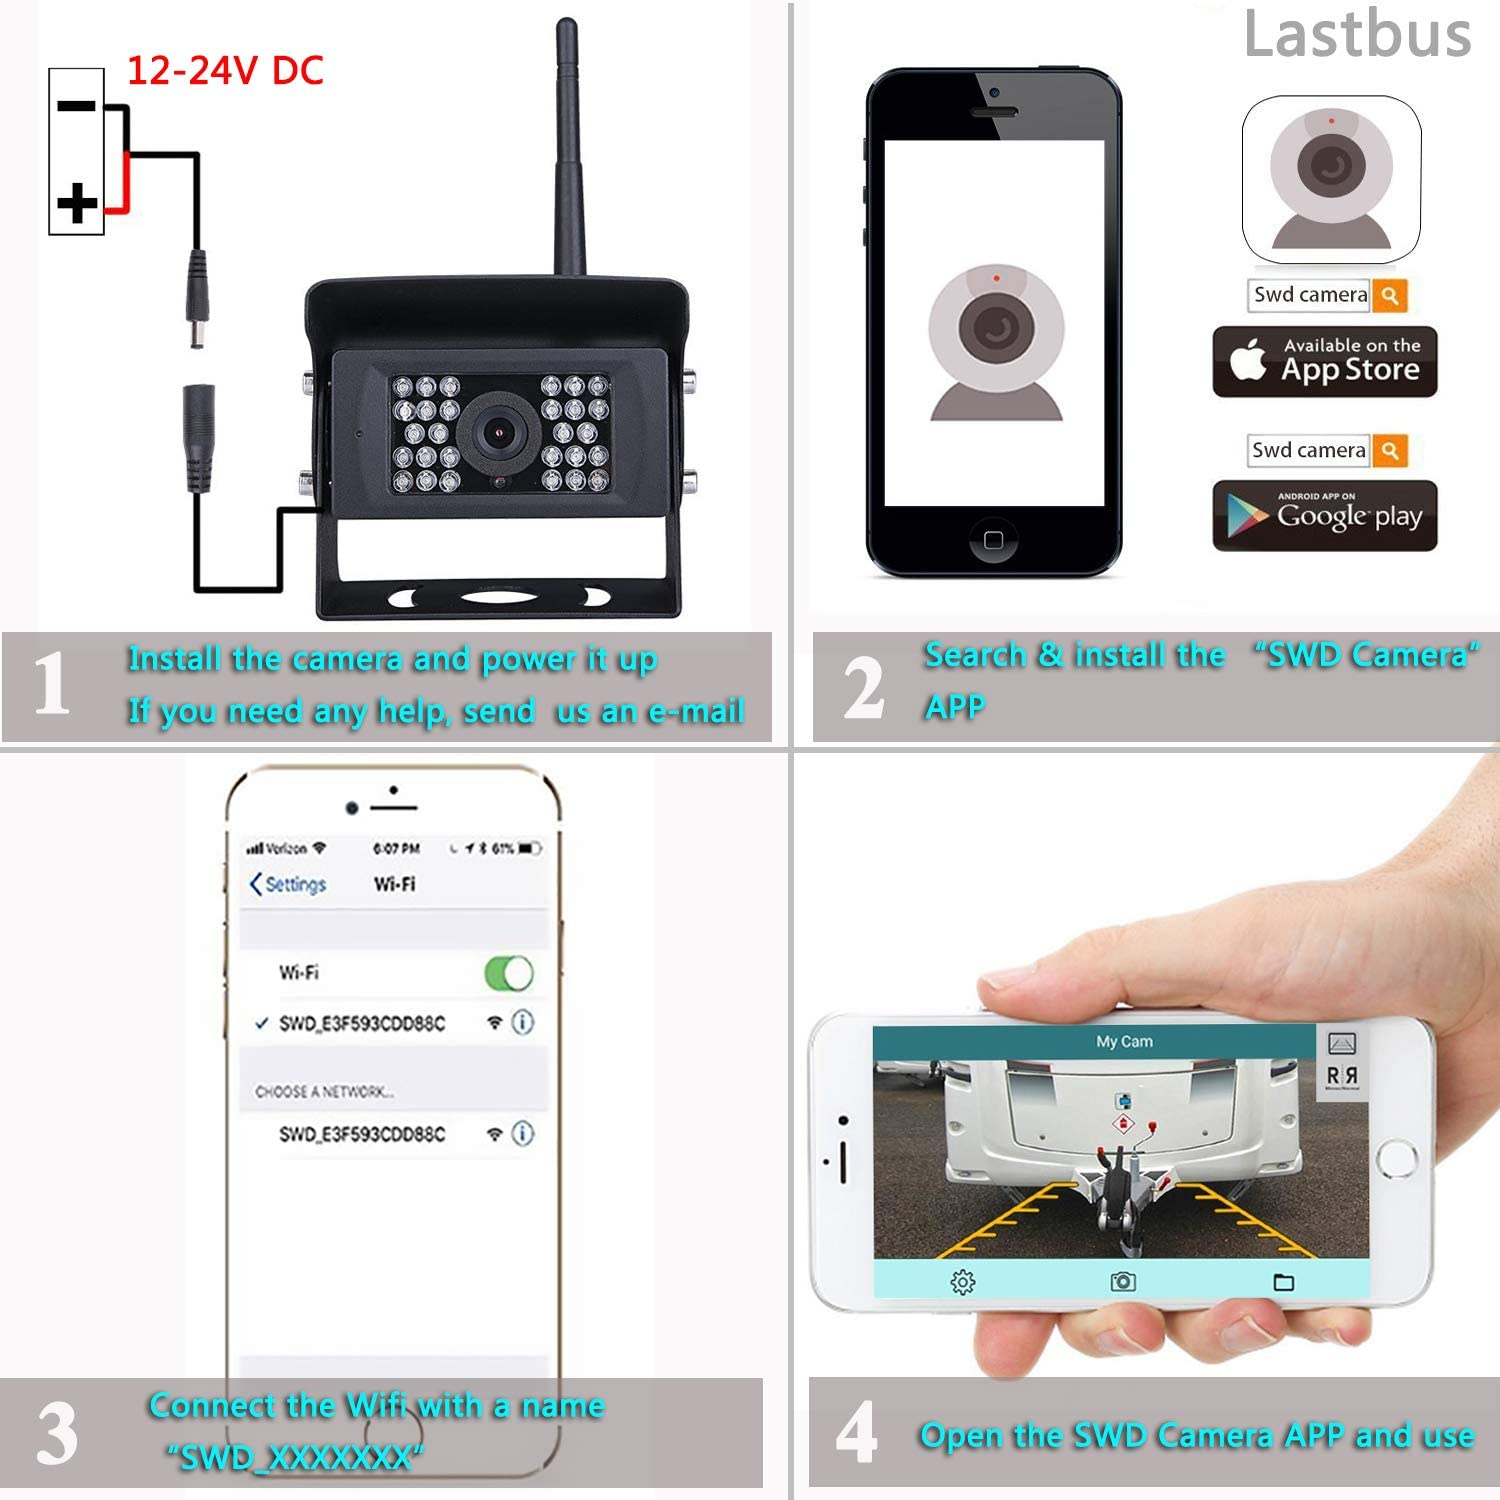 Lastbus Night Vision Wide View Angle Waterproof Wifi Rear View Camera For Iphone Ipad Android Phone